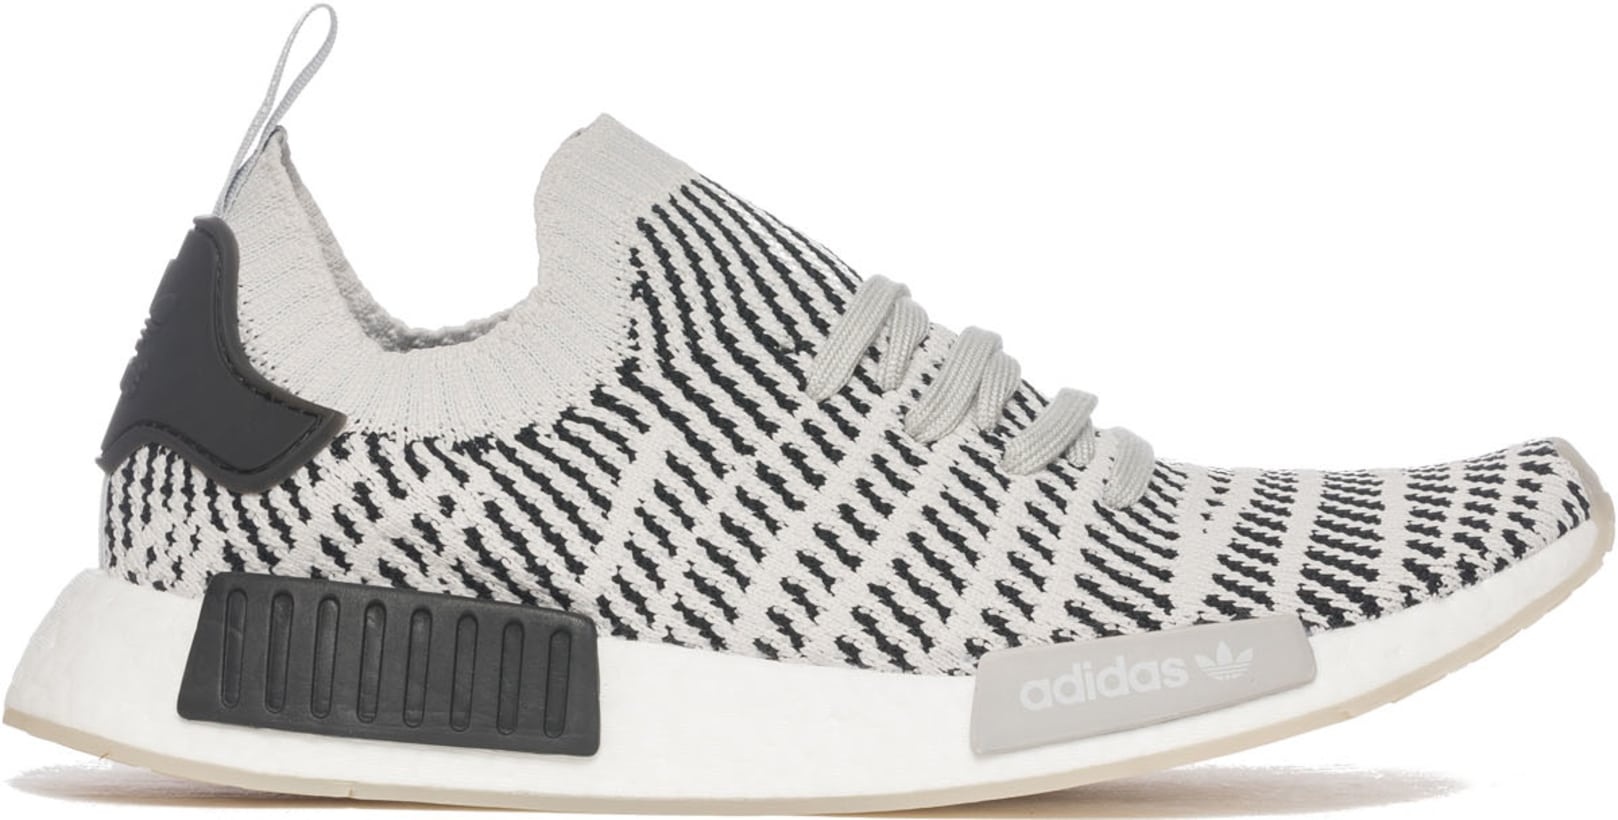 sale retailer 7a20c fbc26 adidas Originals - NMD R1 STLT PK - Core Black/White/Grey